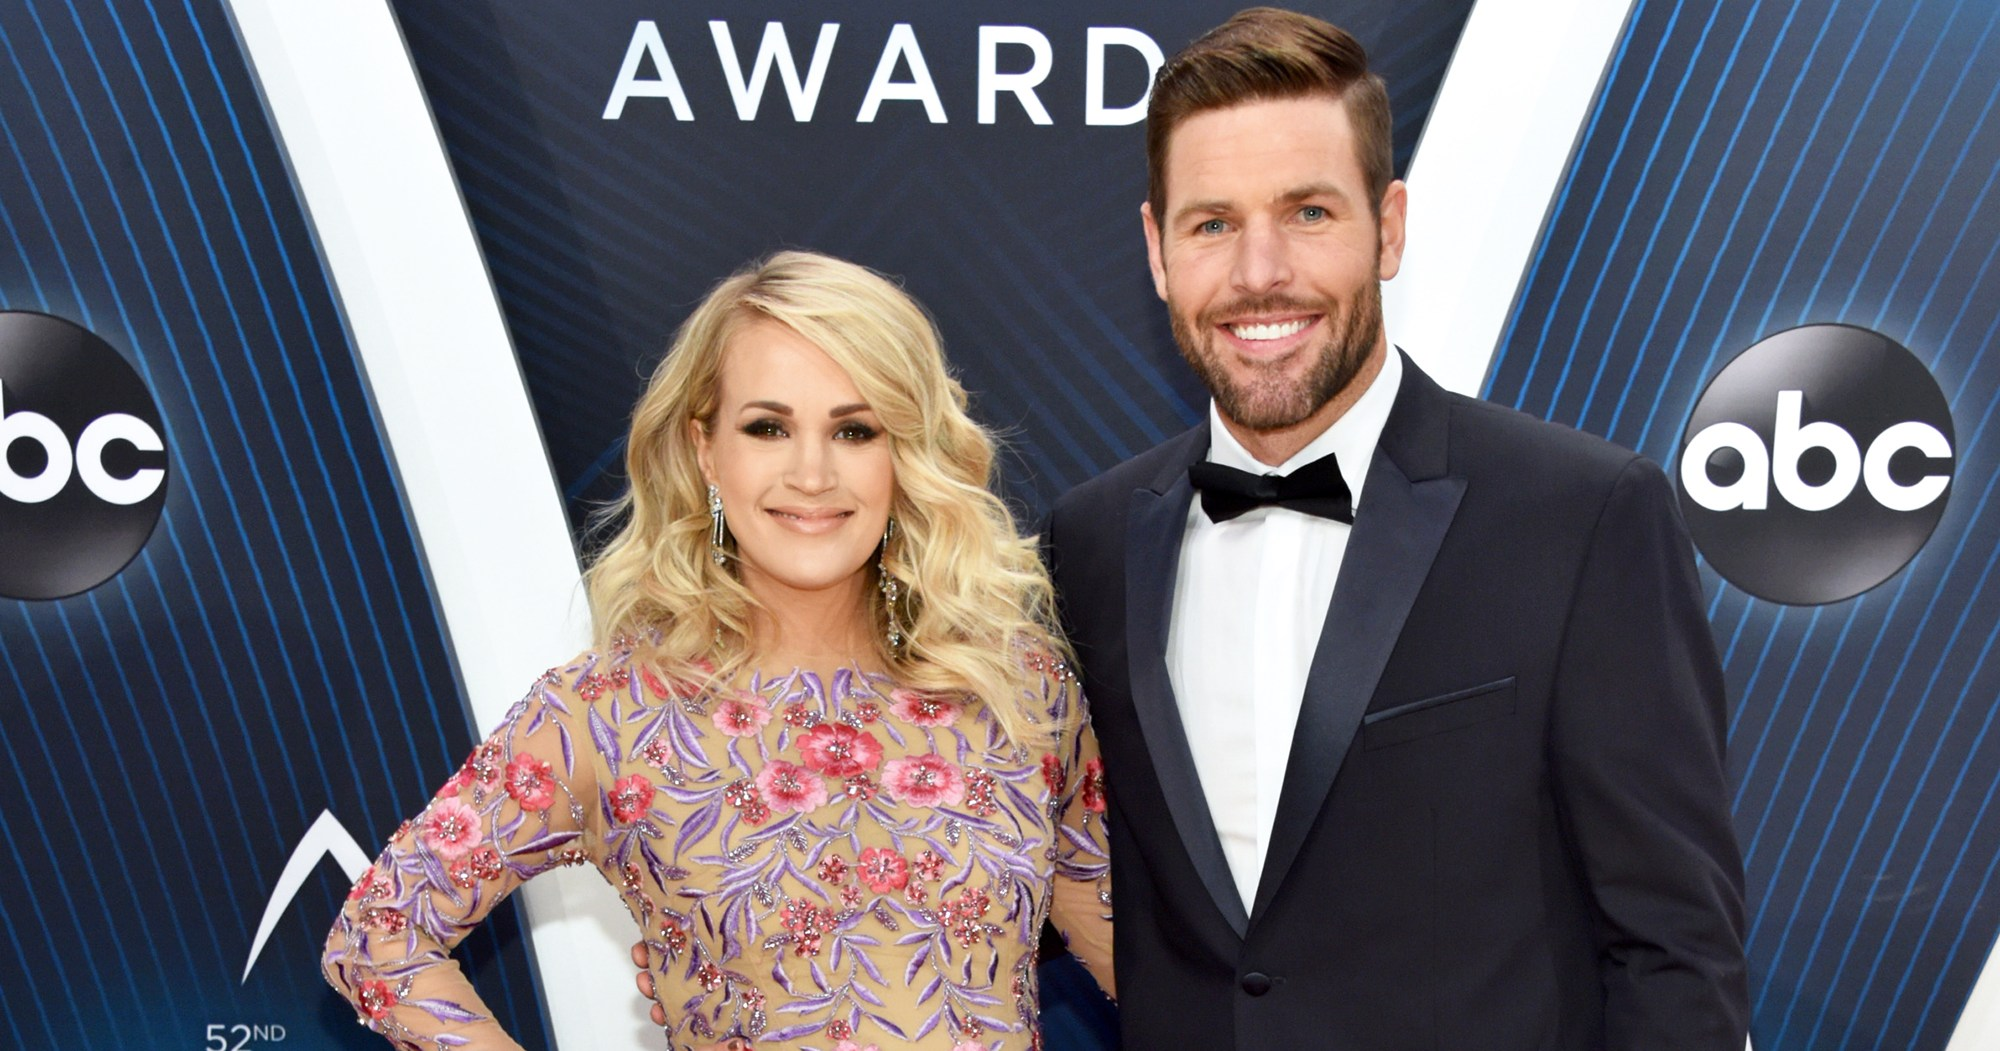 Carrie Underwood Gives Birth to Baby No. 2 With Mike Fisher